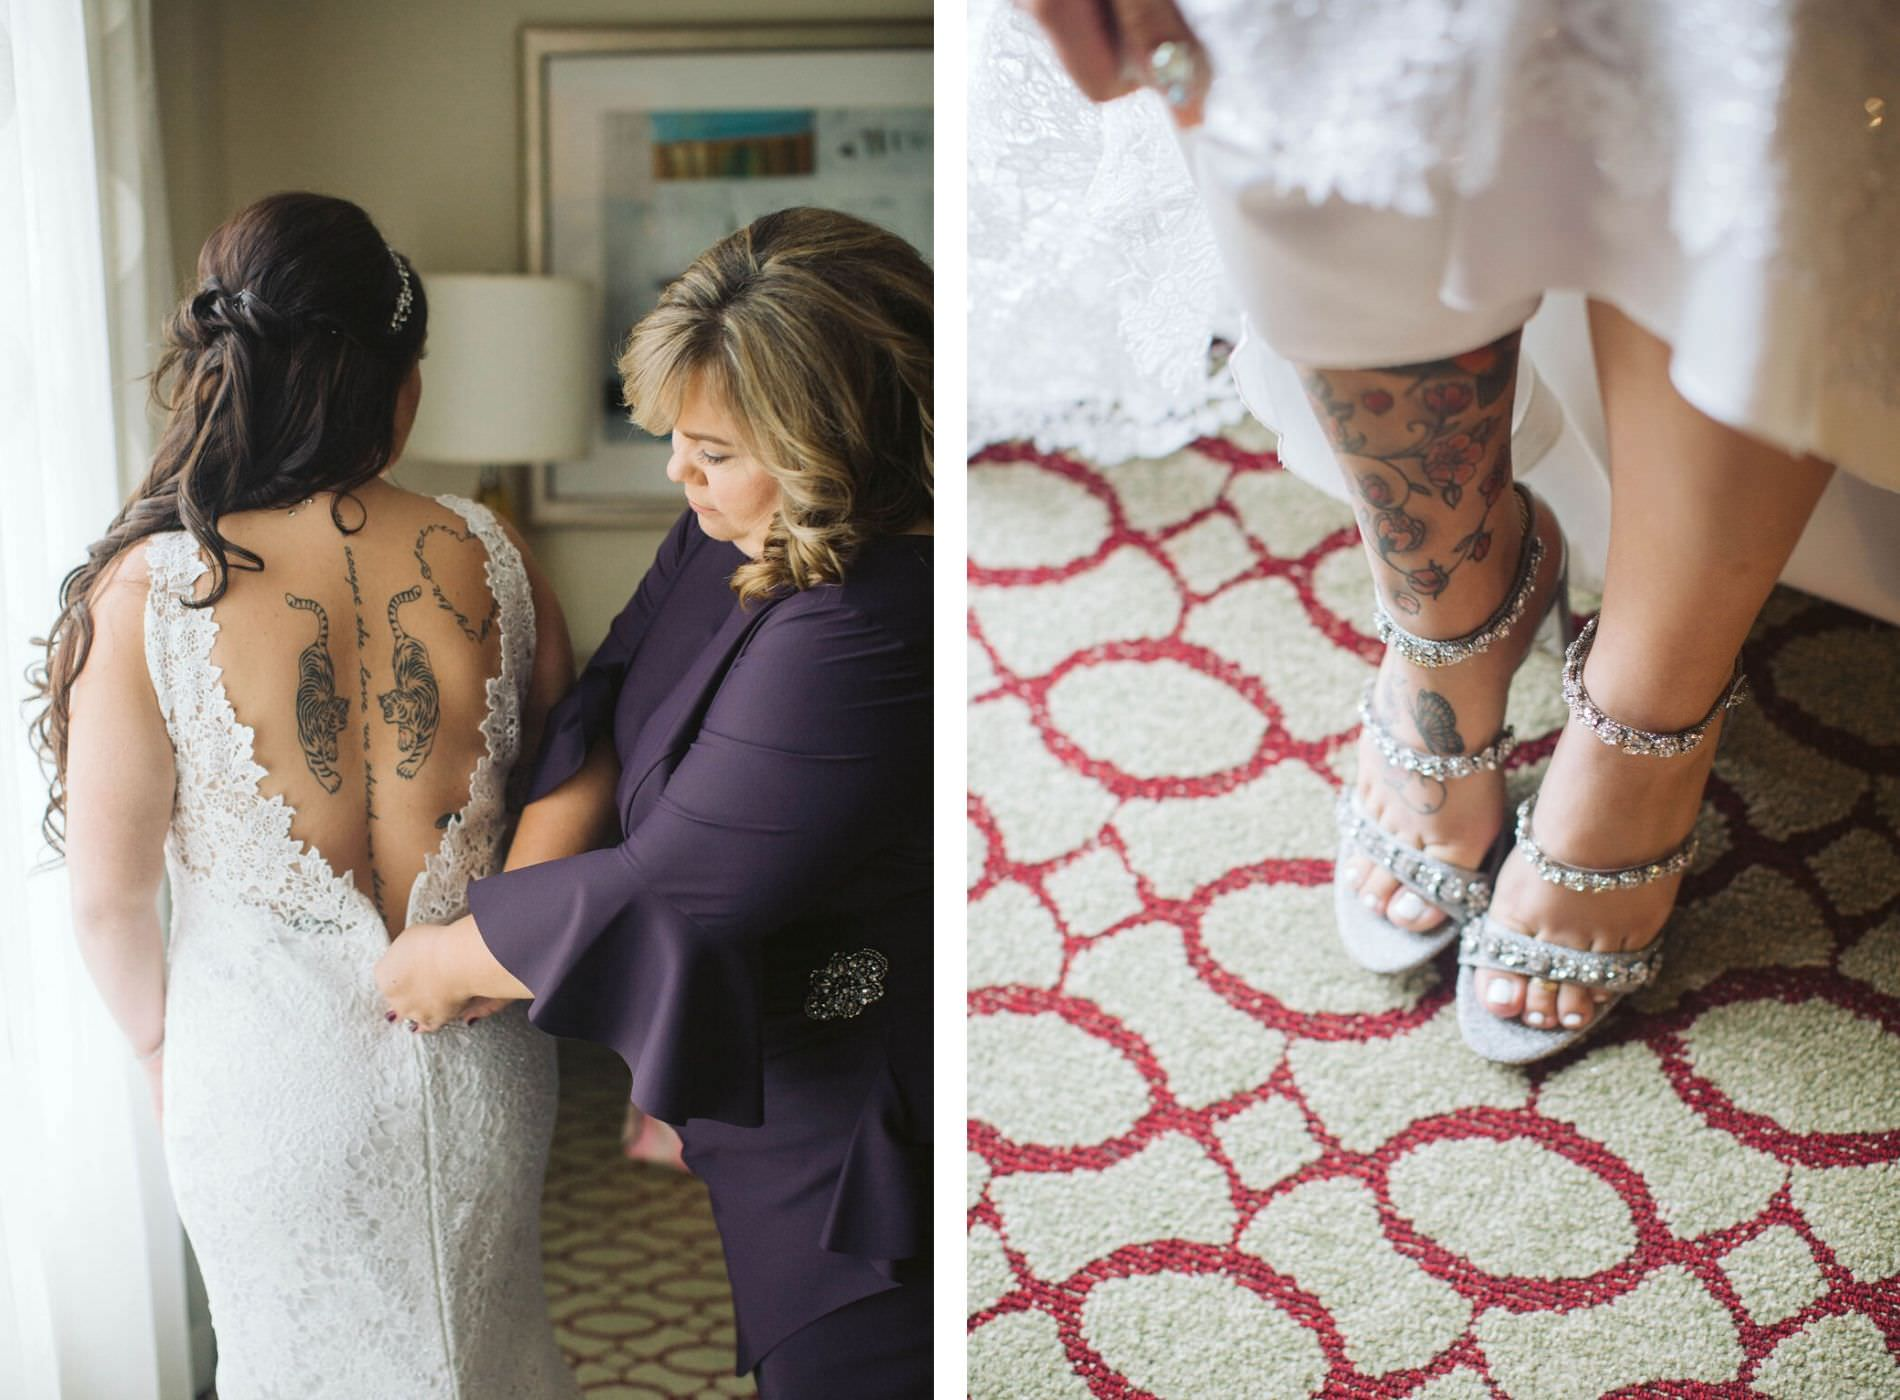 Tampa Bride Getting Ready Wedding Portrait in Low V Open Back Lace Wedding Dress Showing Off Tattoos and Silver Strappy Rhinestone Heel Wedding Shoes   Wedding Hair and Makeup Artist Michele Renee the Studio